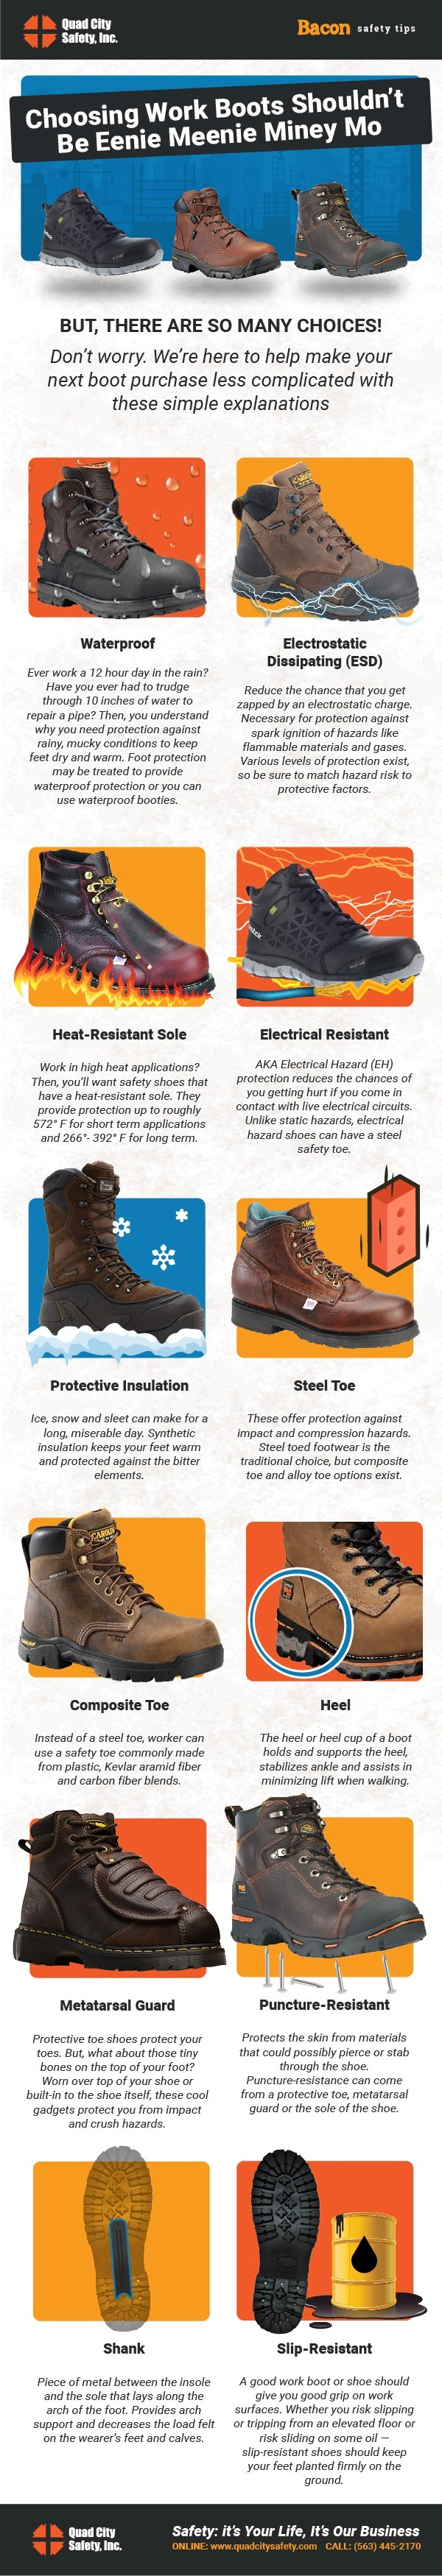 Choosing Work Boots Shouldn't Be Eenie Meenie Miney Mo   But, there are so many choices! Don't worry. We're here to help make your next boot purchase less complicated with these simple explanations.    Electrical Resistant AKA Electrical Hazard (EH) protection reduces the chances of you getting hurt if you come in contact with live electrical circuits. Unlike static hazards, electrical hazard shoes can have a steel safety toe.    Electrostatic Dissipating (ESD) Reduce the chance that you get zapped by an electrostatic charge. Necessary for protection against spark ignition of hazards like flammable materials and gases. Various levels of protection exist, so be sure to match hazard risk to protective factors.   Heat-Resistant Sole Work in high heat applications? Then, you'll want safety shoes that have a heat-resistant sole. They provide protection up to roughly 572° F for short term applications and 266°- 392° F for long term.   Waterproof Ever work a 12 hour day in the rain? Have you ever had to trudge through 10 inches of water to repair a pipe? Then, you understand why you need protection against rainy, mucky conditions to keep feet dry and warm. Foot protection may be treated to provide waterproof protection or you can use waterproof booties.    Protective Insulation Ice, snow and sleet can make for a long, miserable day. Synthetic insulation keeps your feet warm and protected against the bitter elements.   Steel Toe These offer protection against impact and compression hazards. Steel toed footwear is the traditional choice, but composite toe and alloy toe options exist.  Composite Toe Instead of a steel toe, worker can use a safety toe commonly made from plastic, Kevlar aramid fiber and carbon fiber blends.   Metatarsal Guard Protective toe shoes protect your toes. But, what about those tiny bones on the top of your foot? Worn over top of your shoe or built-in to the shoe itself, these cool gadgets protect you from impact and crush hazards.    Shank Piece of metal between the insole and the sole that lays along the arch of the foot. Provides arch support and decreases the load felt on the wearer's feet and calves.    Puncture-Resistant Protects the skin from materials that could possibly pierce or stab through the shoe. Puncture-resistance can come from a protective toe, metatarsal guard or the sole of the shoe.    Heel The heel or heel cup of a boot holds and supports the heel, stabilizes ankle and assists in minimizing lift when walking.      Slip-Resistant A good work boot or shoe should give you good grip on work surfaces. Whether you risk slipping or tripping from an elevated floor or risk sliding on some oil — slip-resistant shoes should keep your feet planted firmly on the ground.